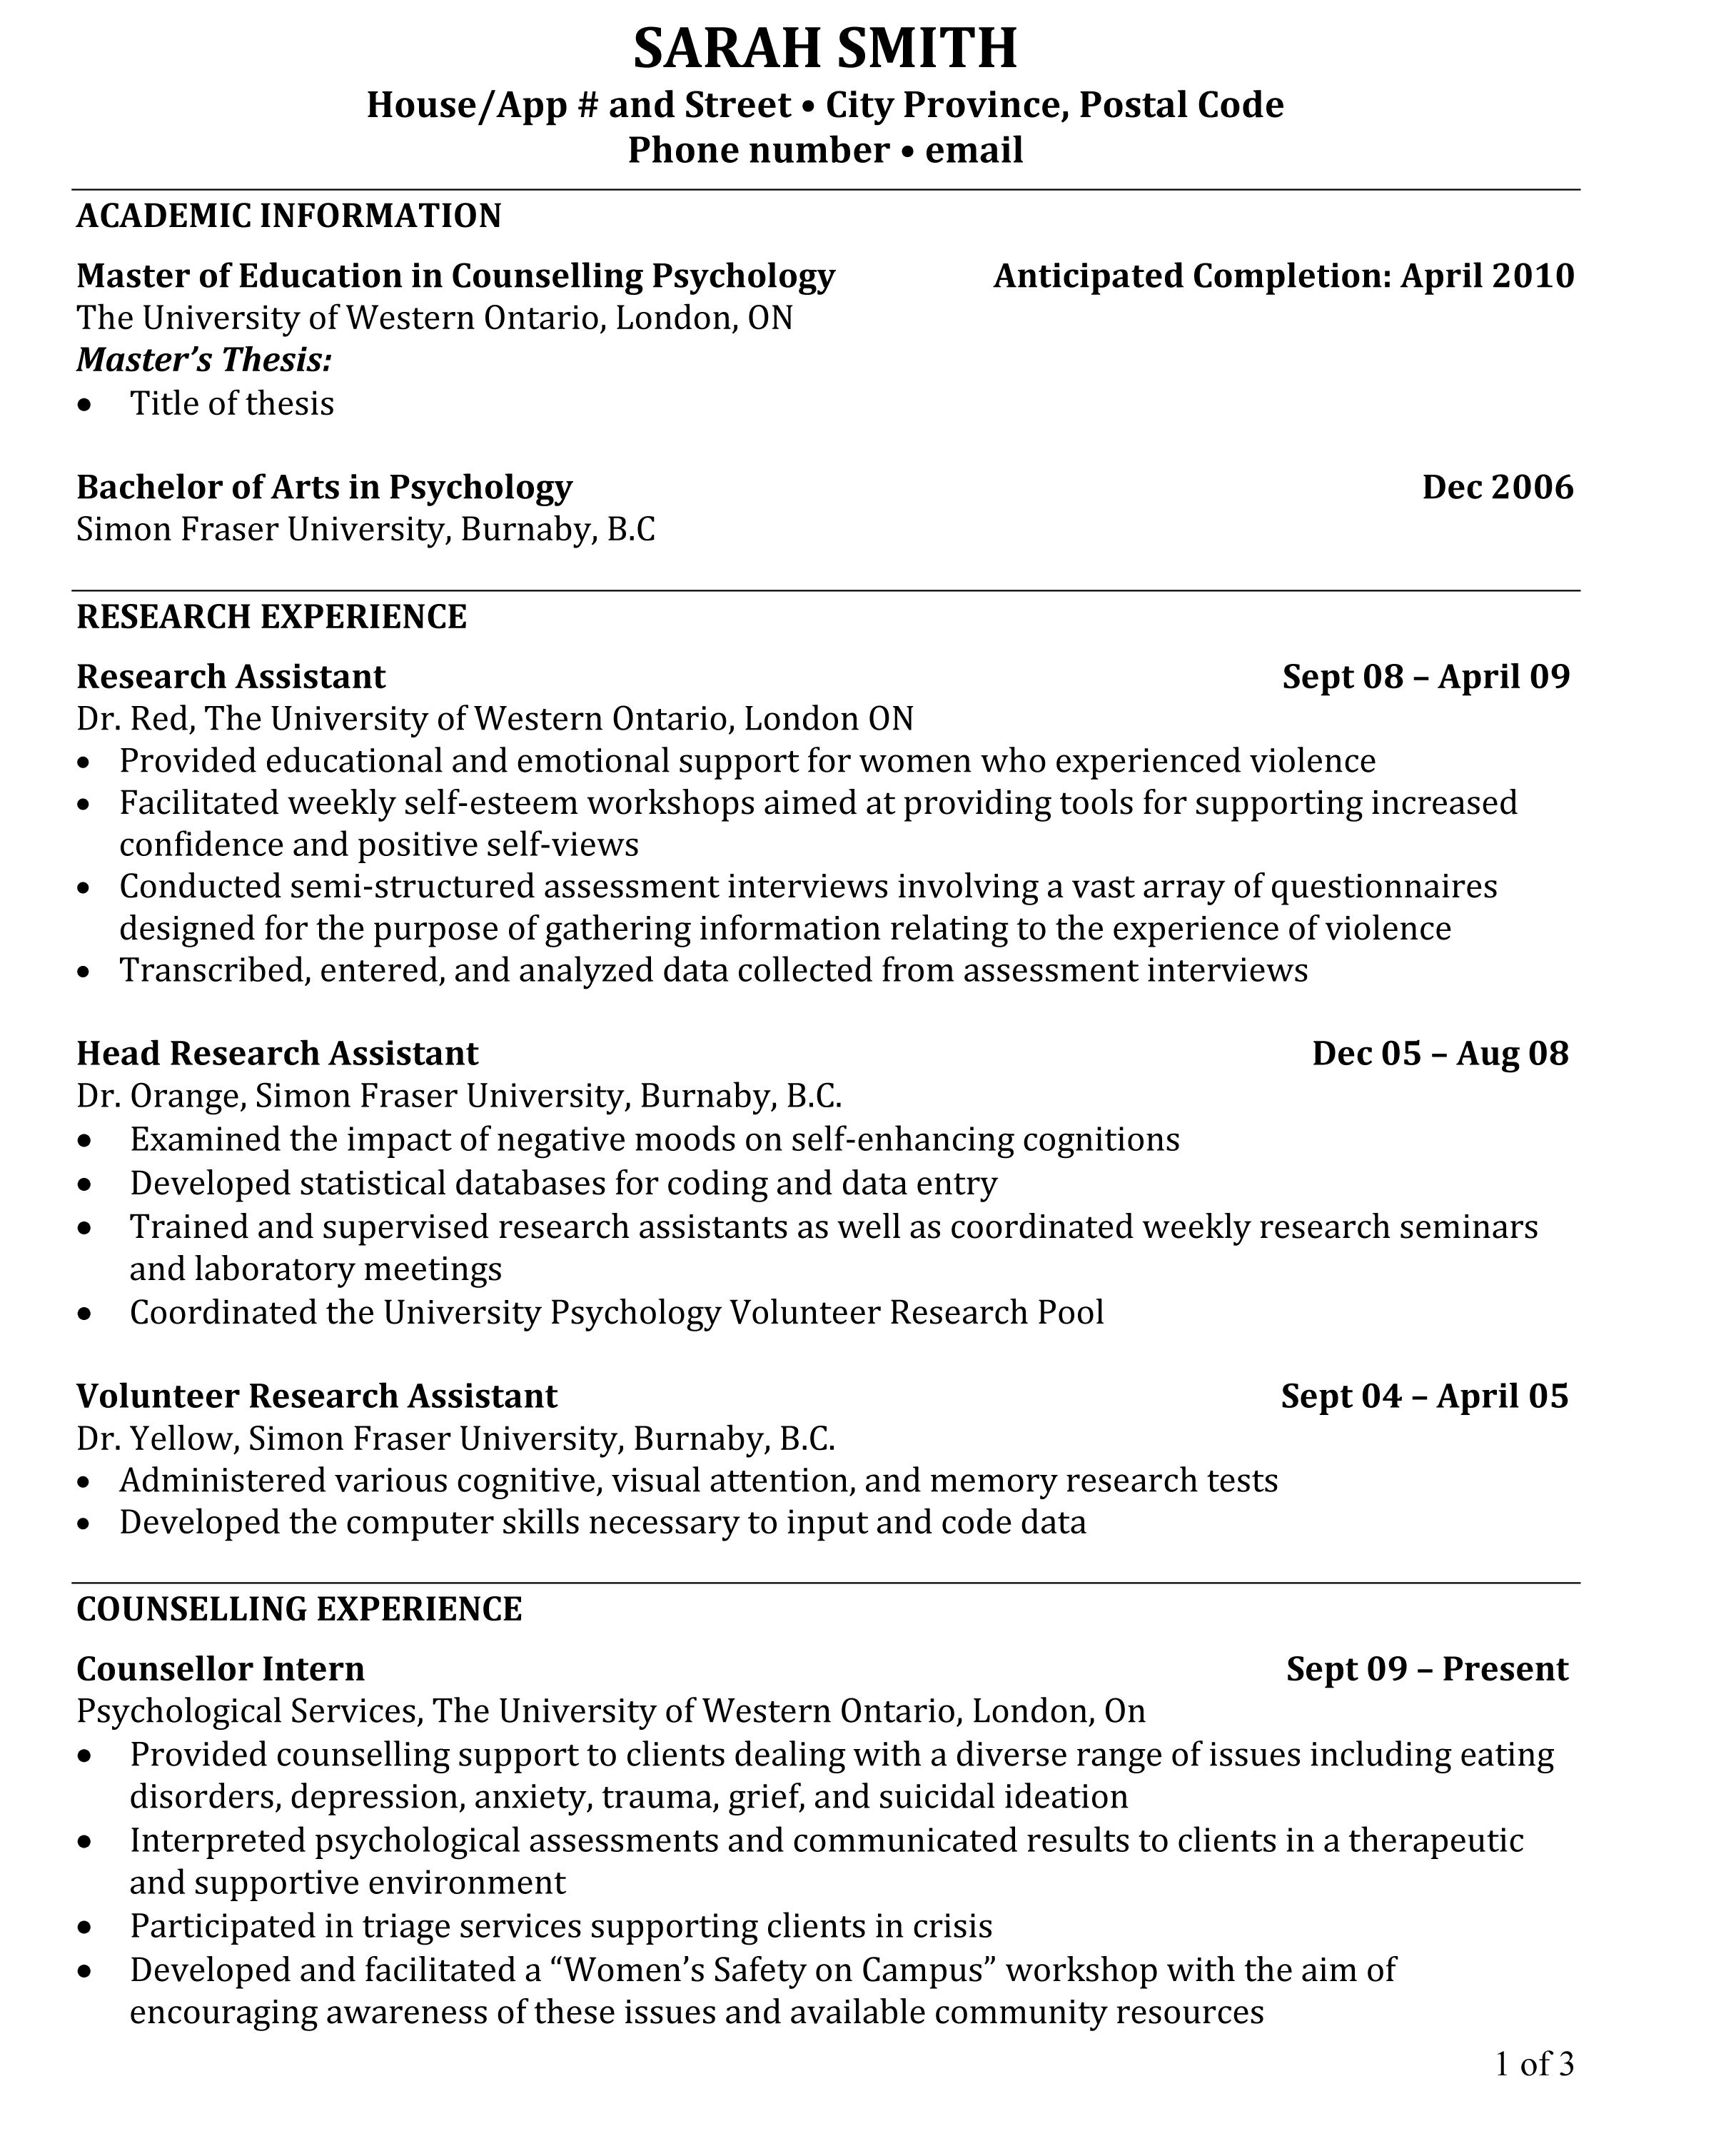 Best 25+ Academic Cv Ideas On Pinterest | Resume Architecture, Architecture  Portfolio And Writing A Cv  Academic Resume Format